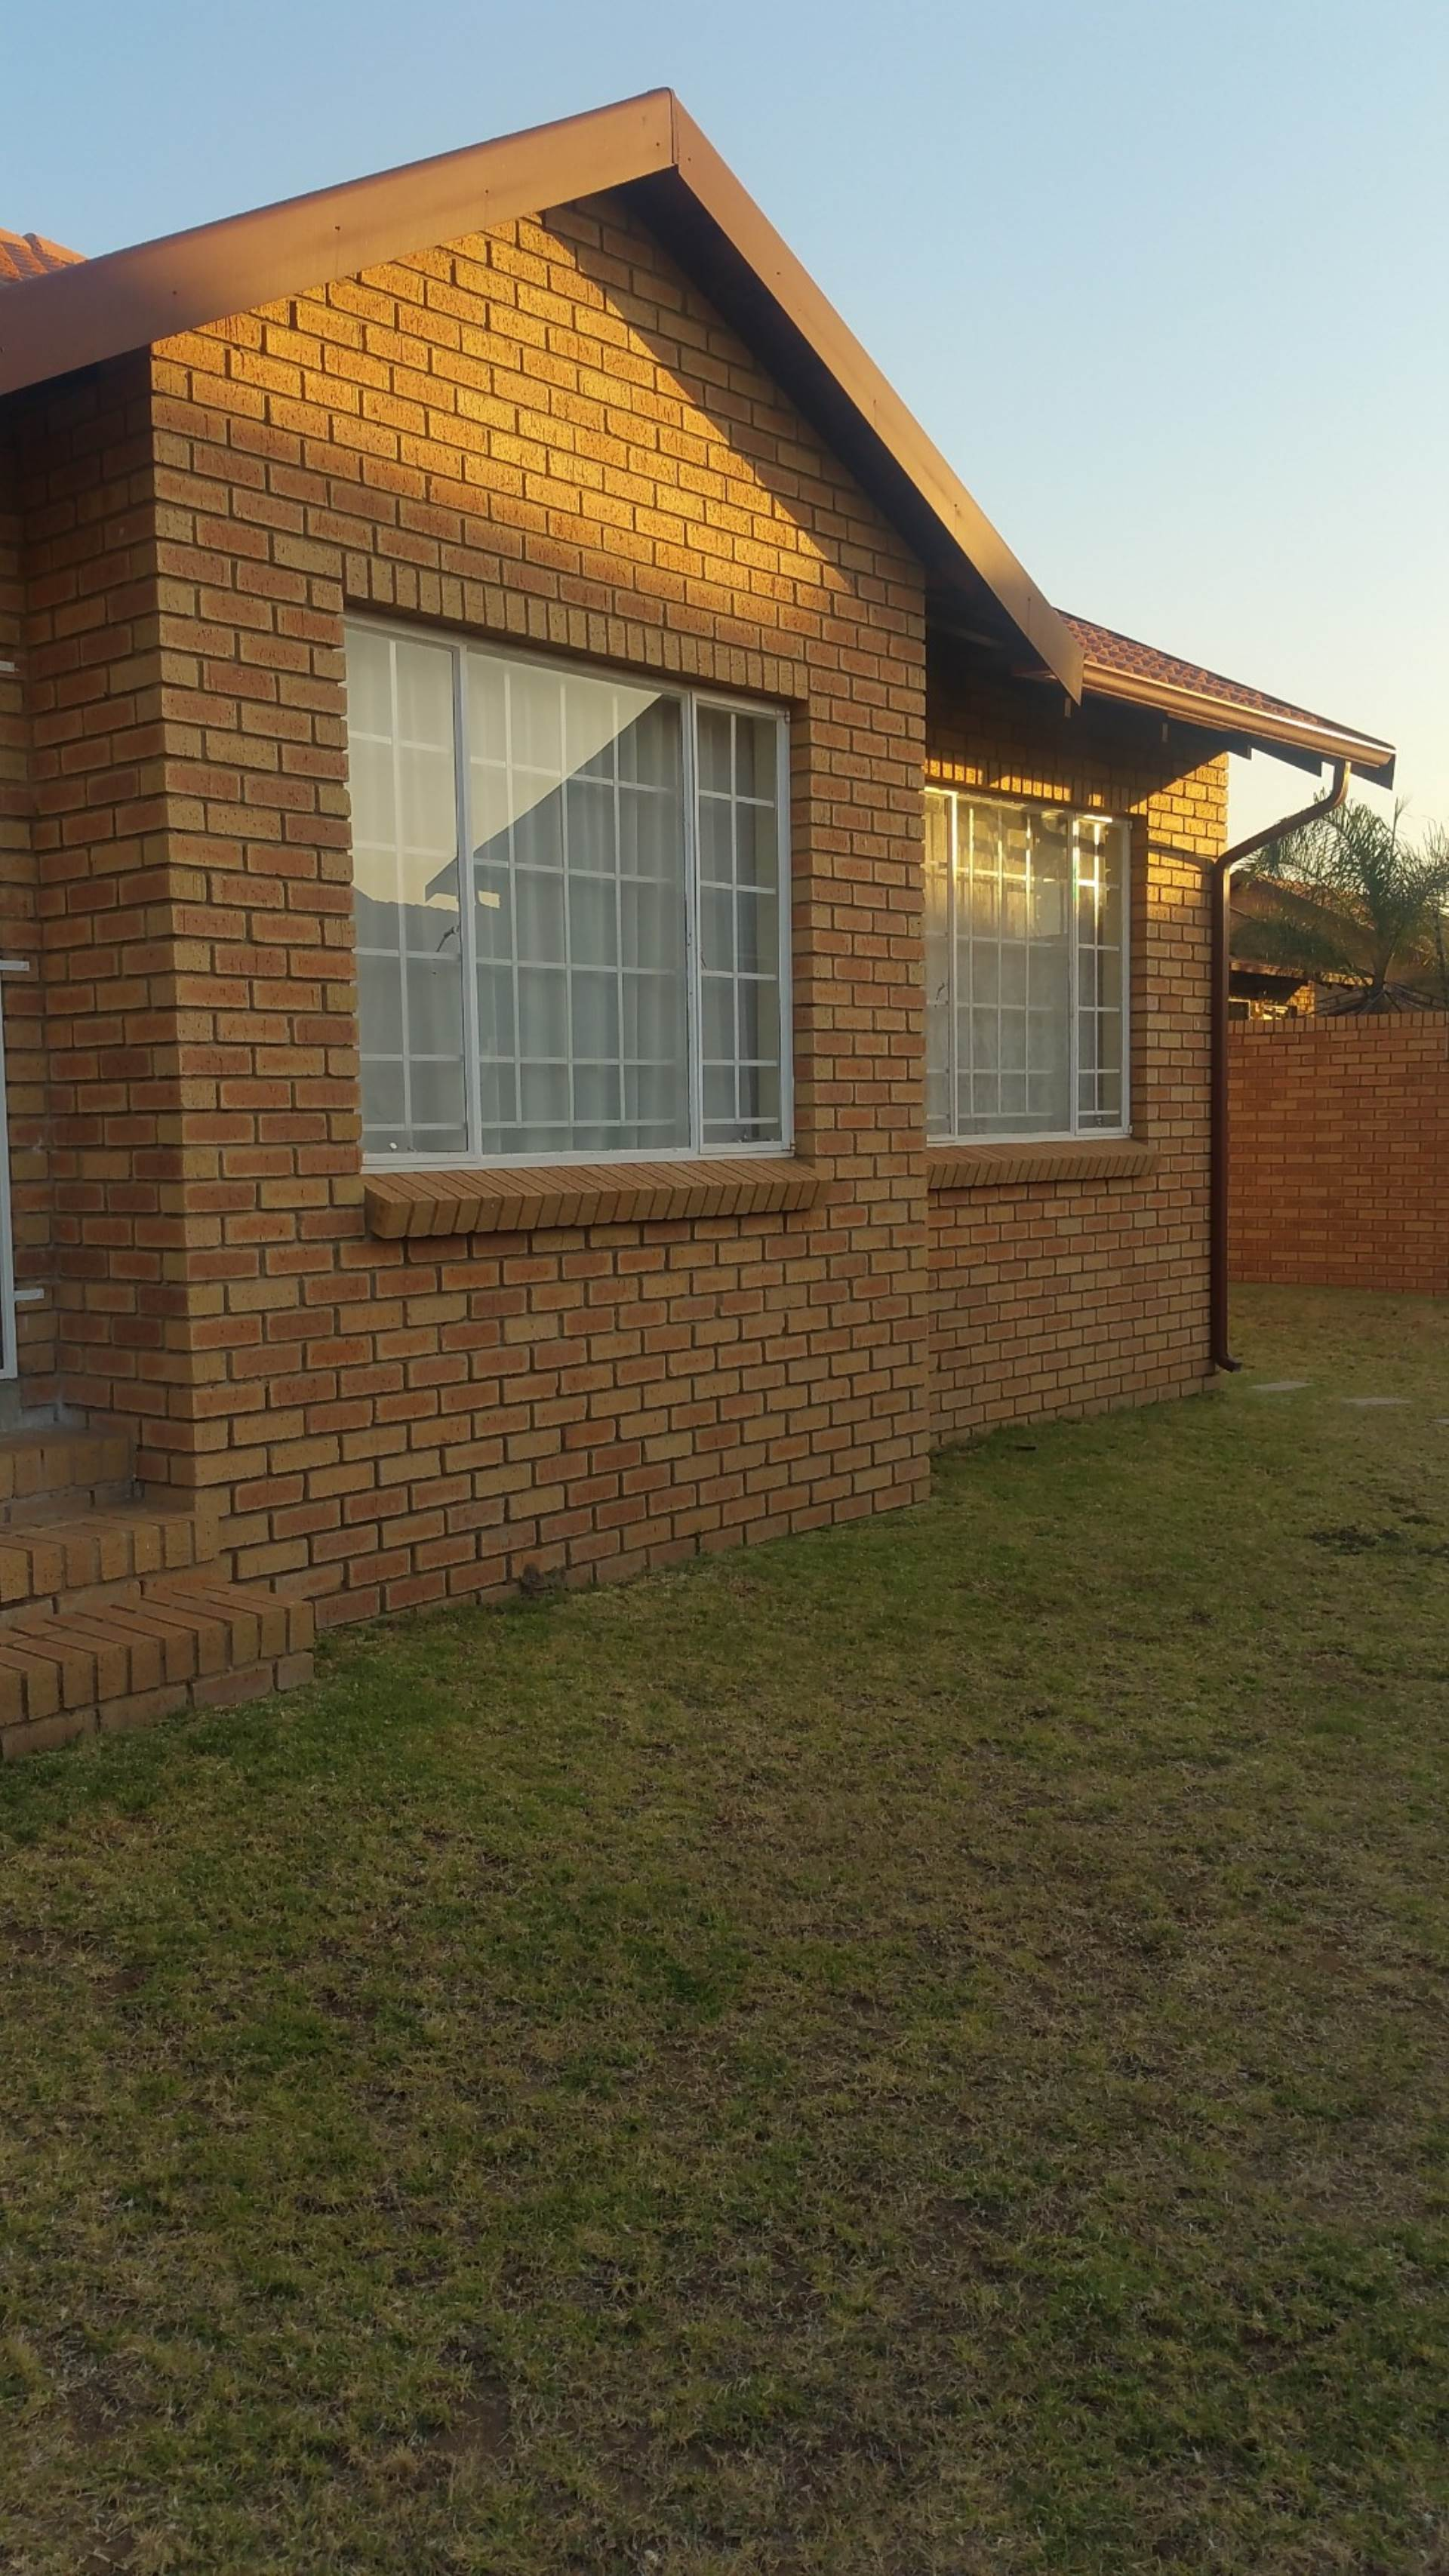 Townhouse To Rent In The Reeds & Ext, Centurion, Gauteng for R 9,000